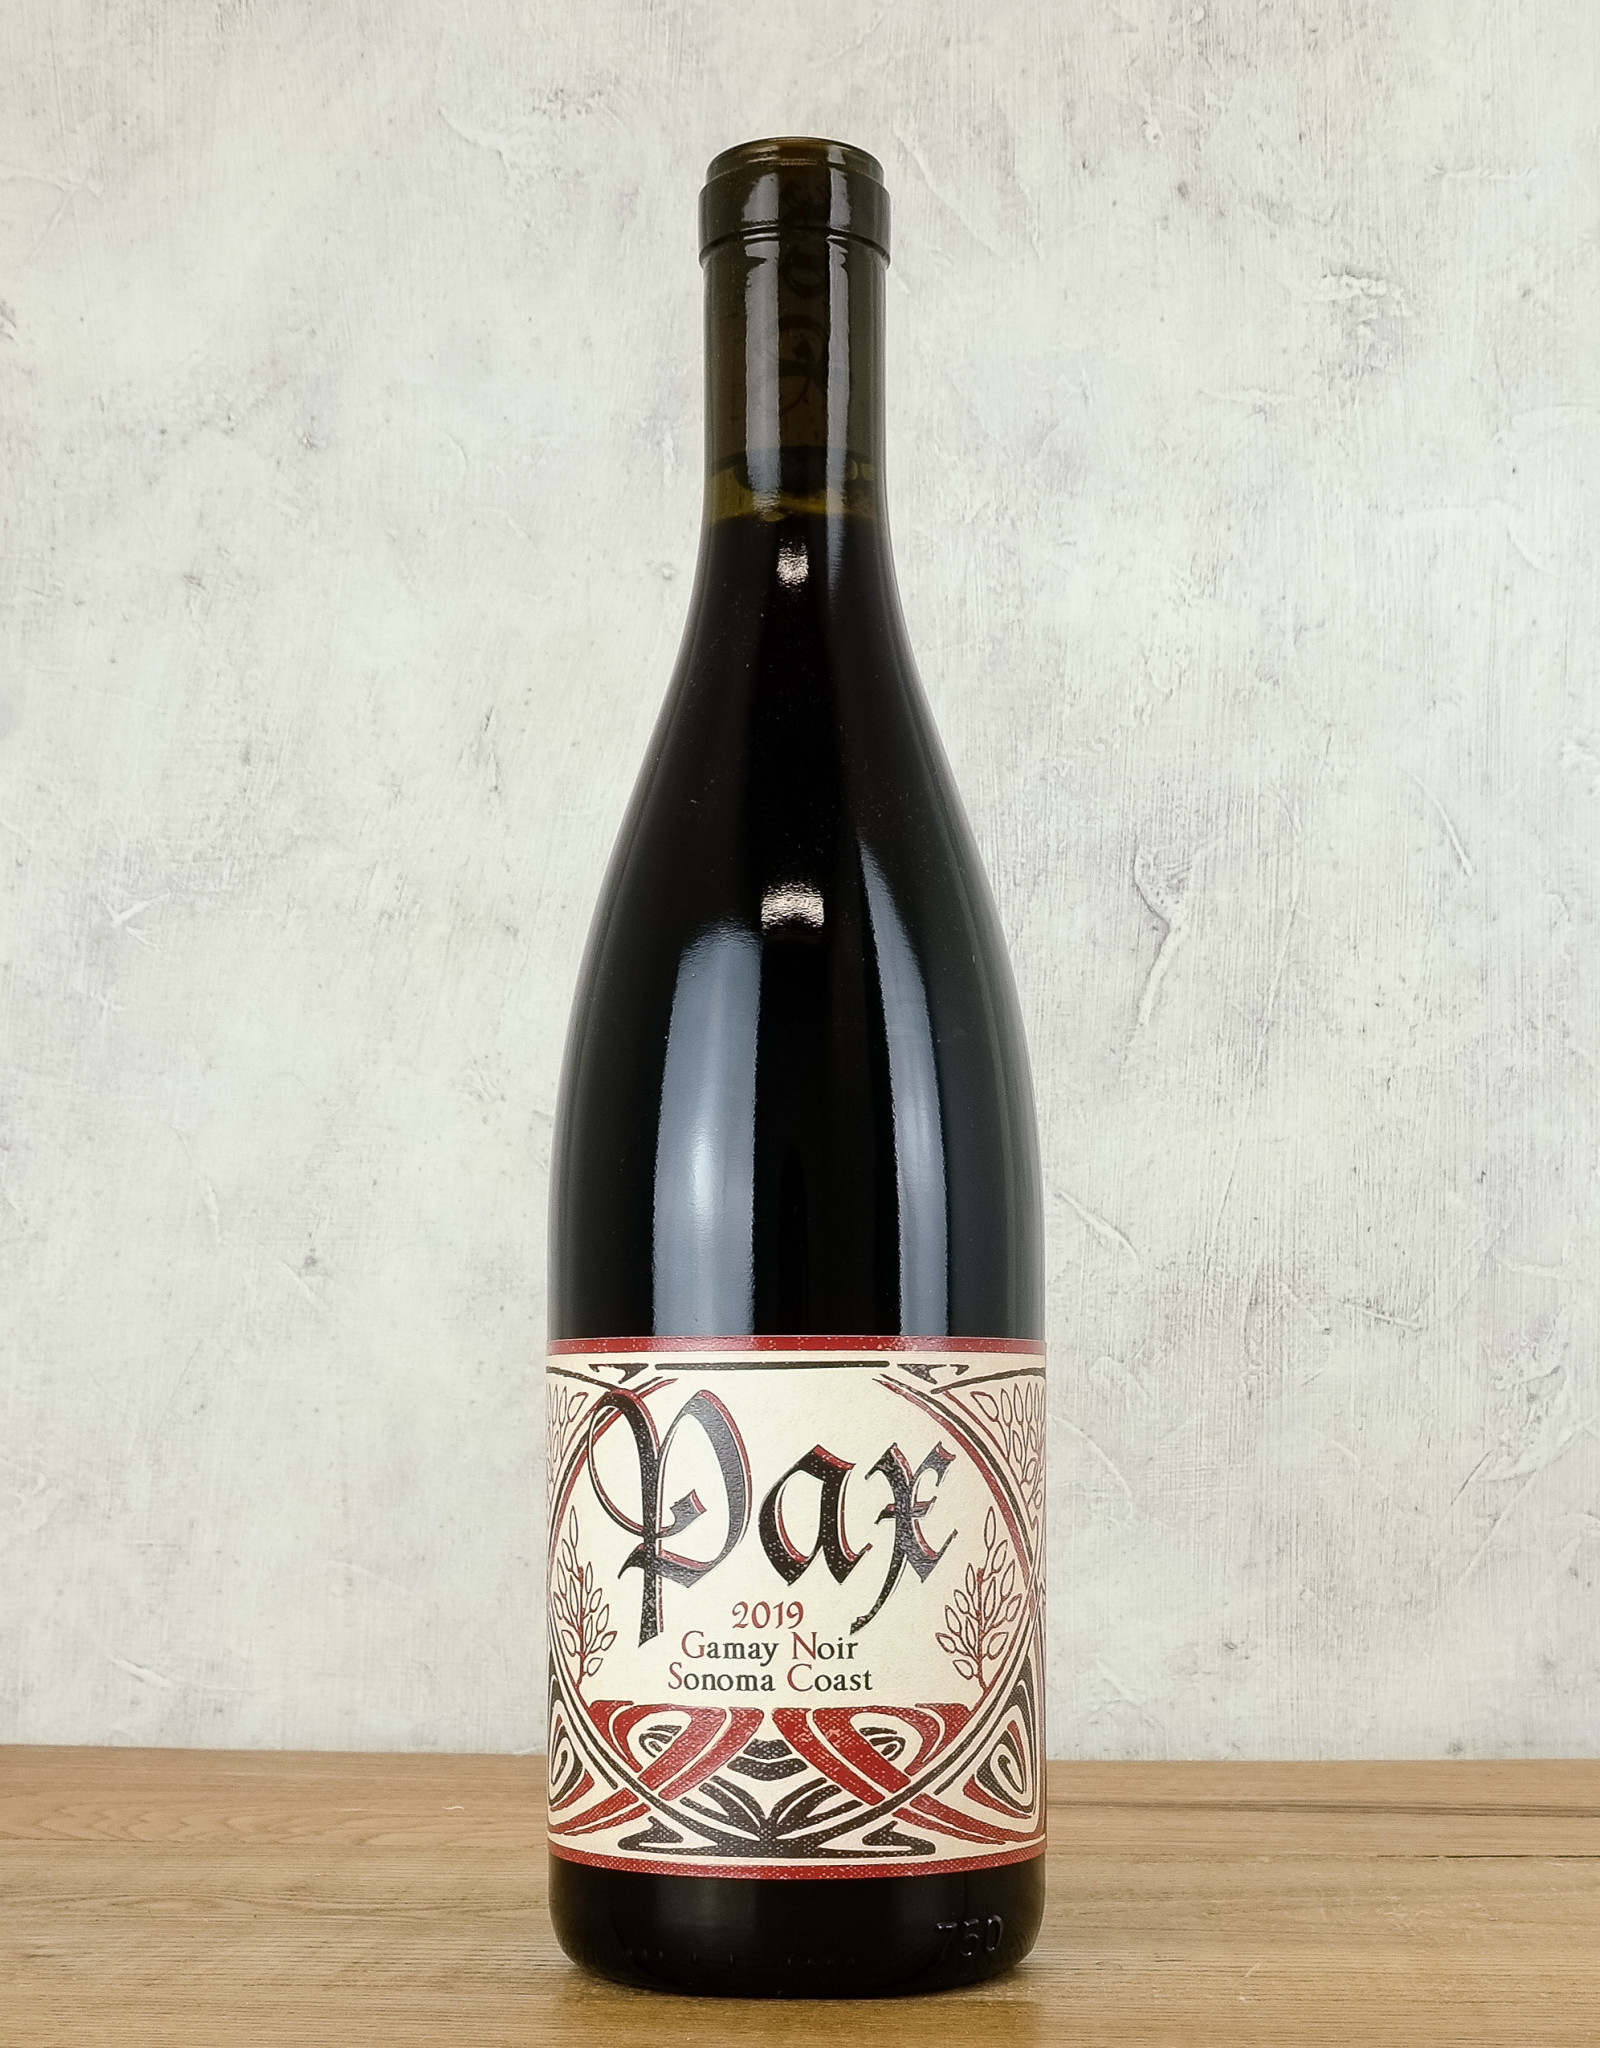 Pax Gamay